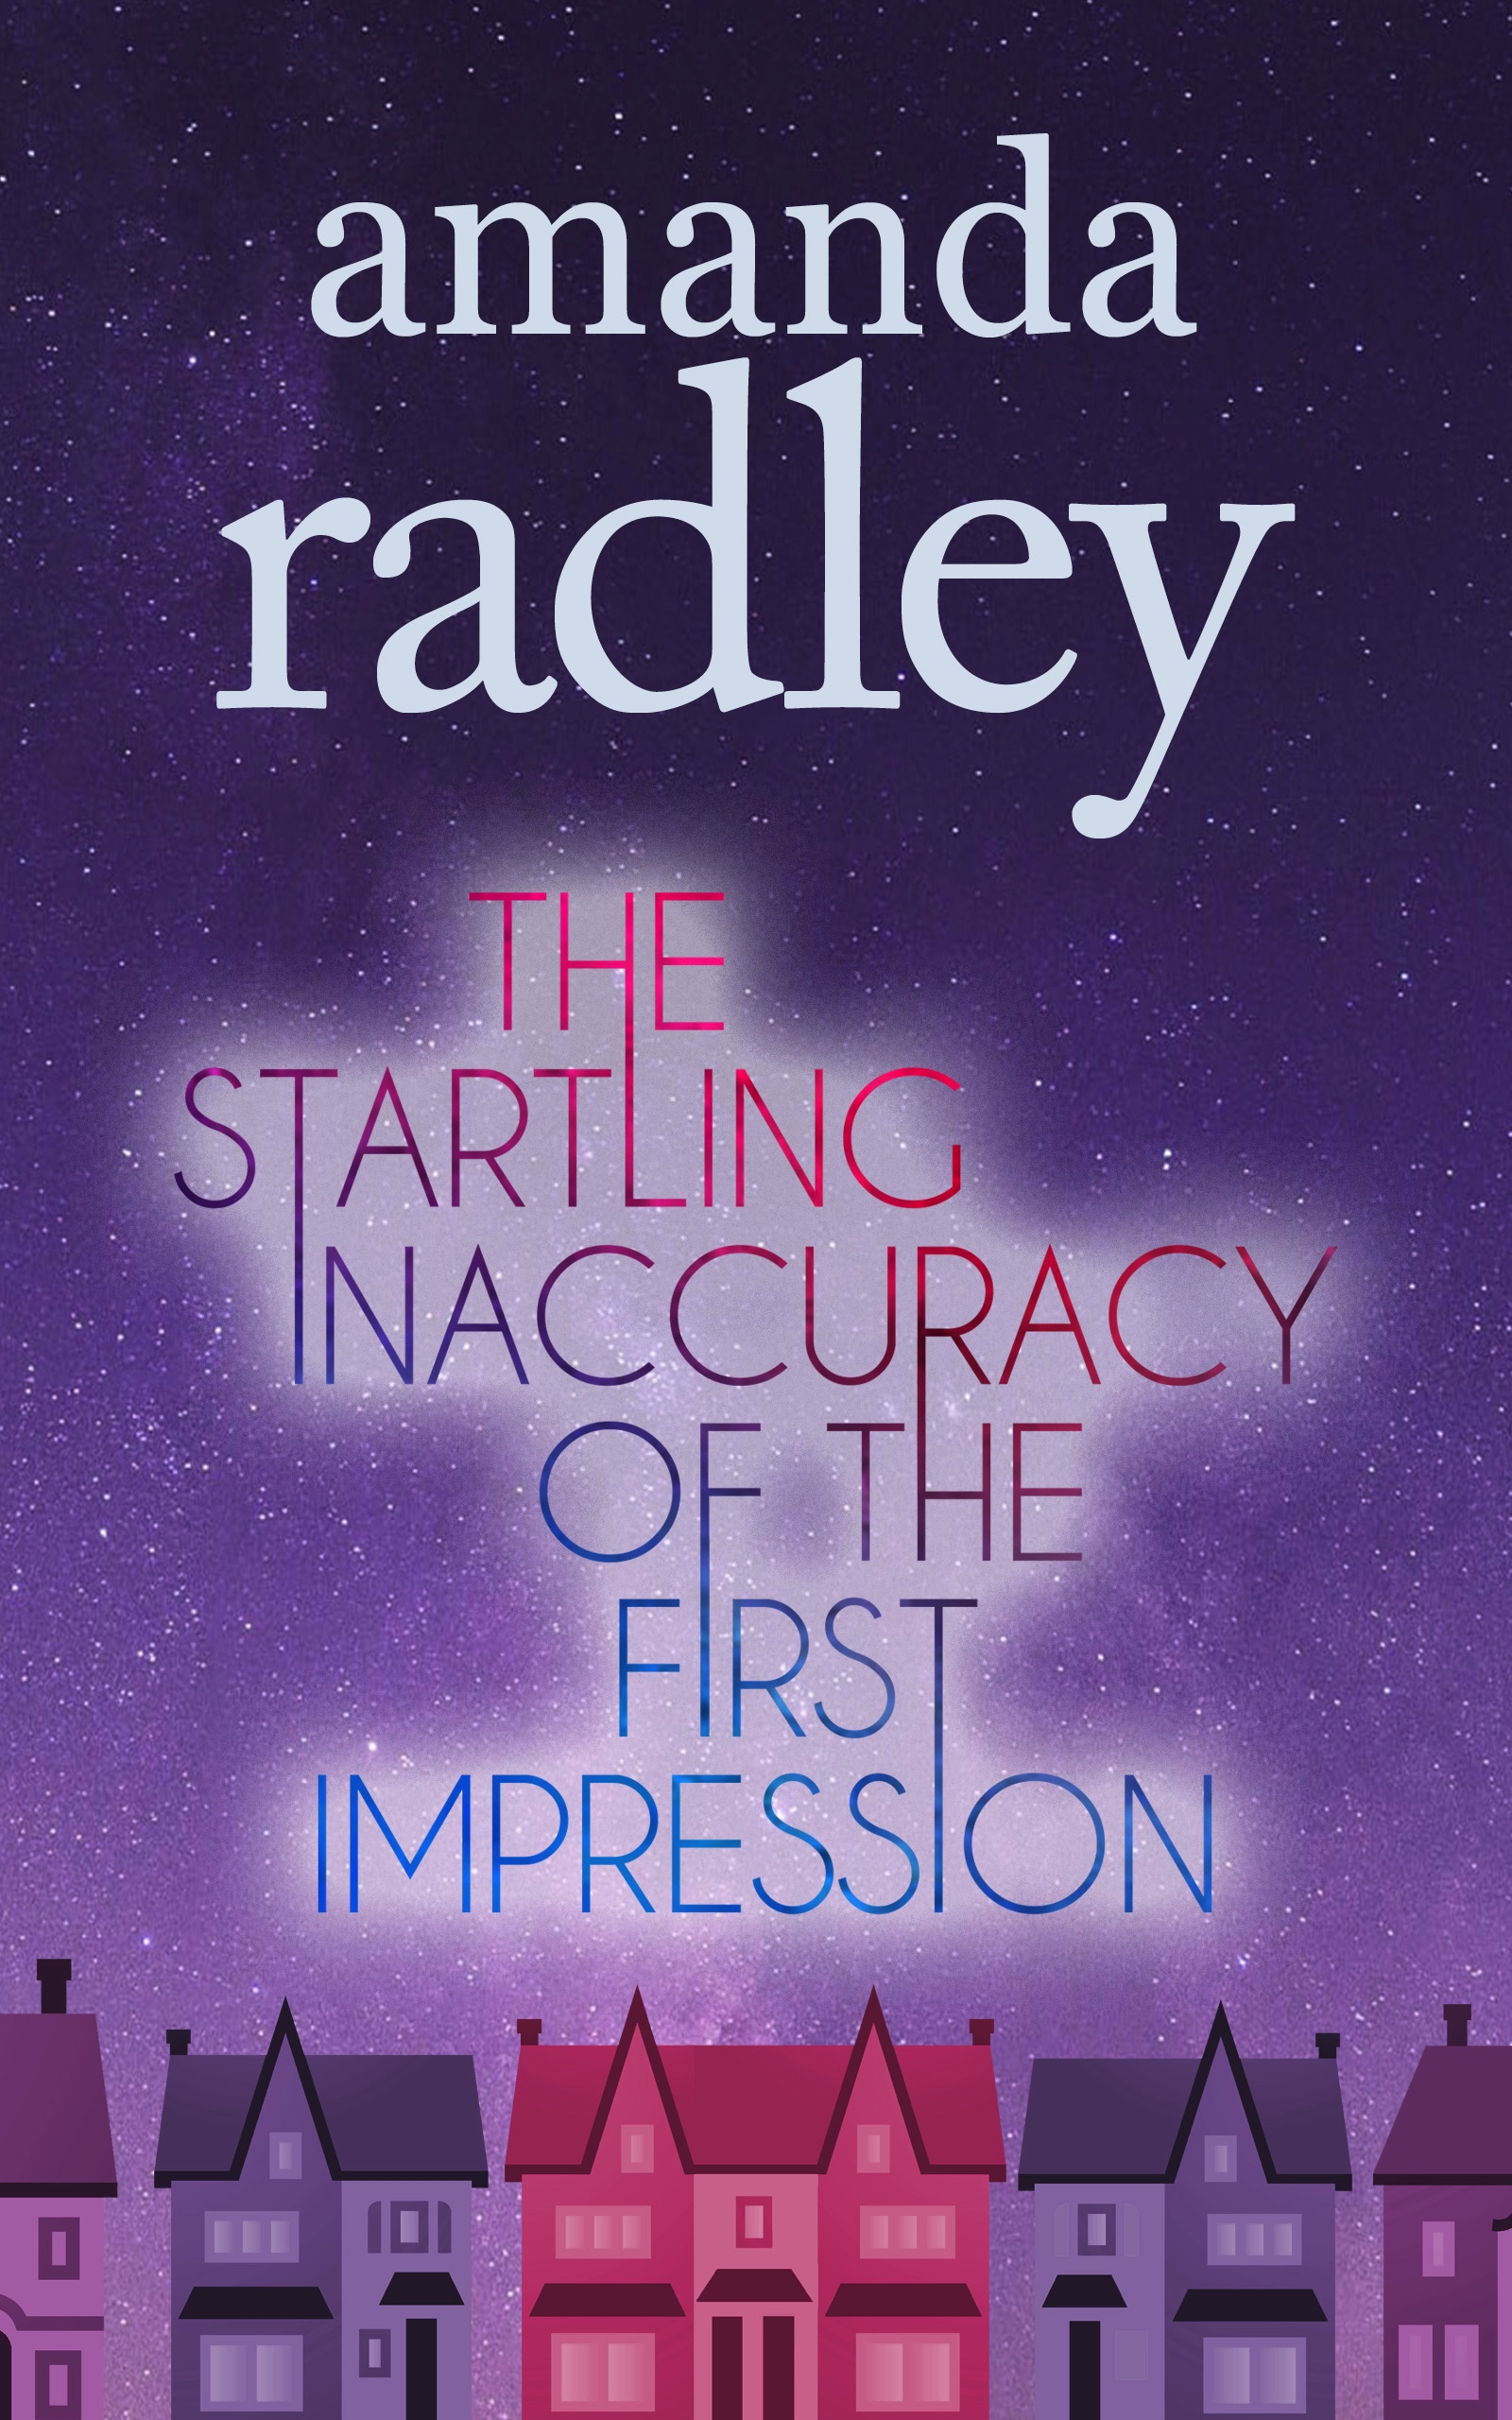 The Startling Inaccuracy of the First Impression